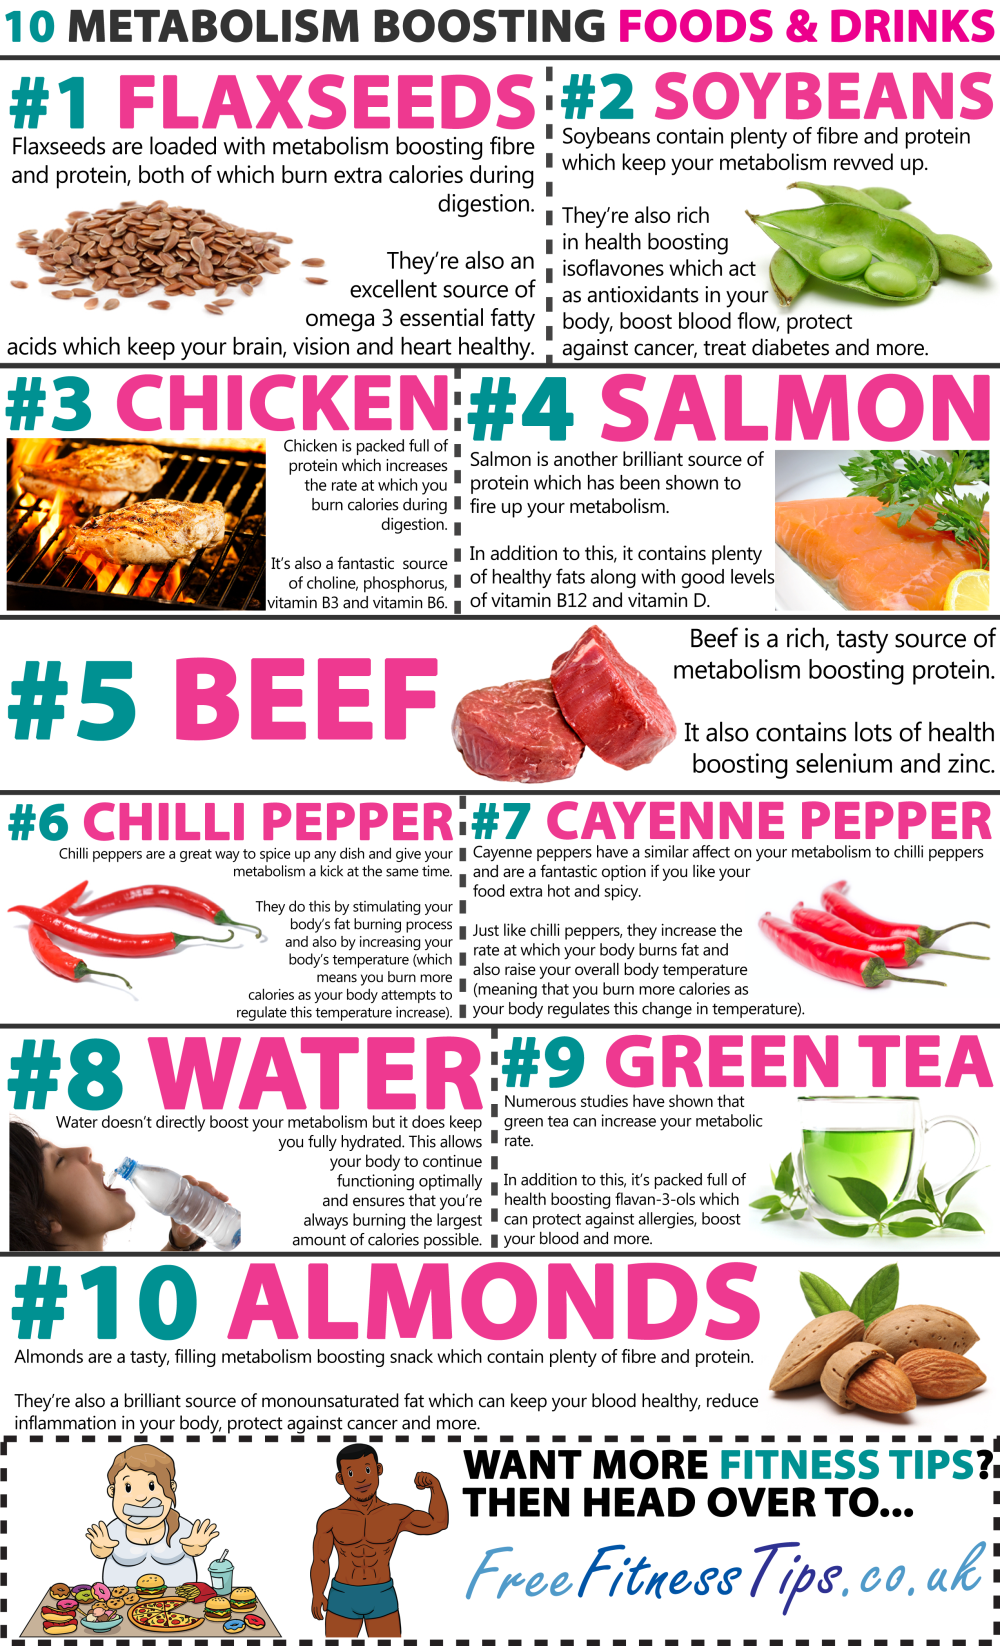 Best Foods And Drinks To Improve Your Metabolism - Infographic